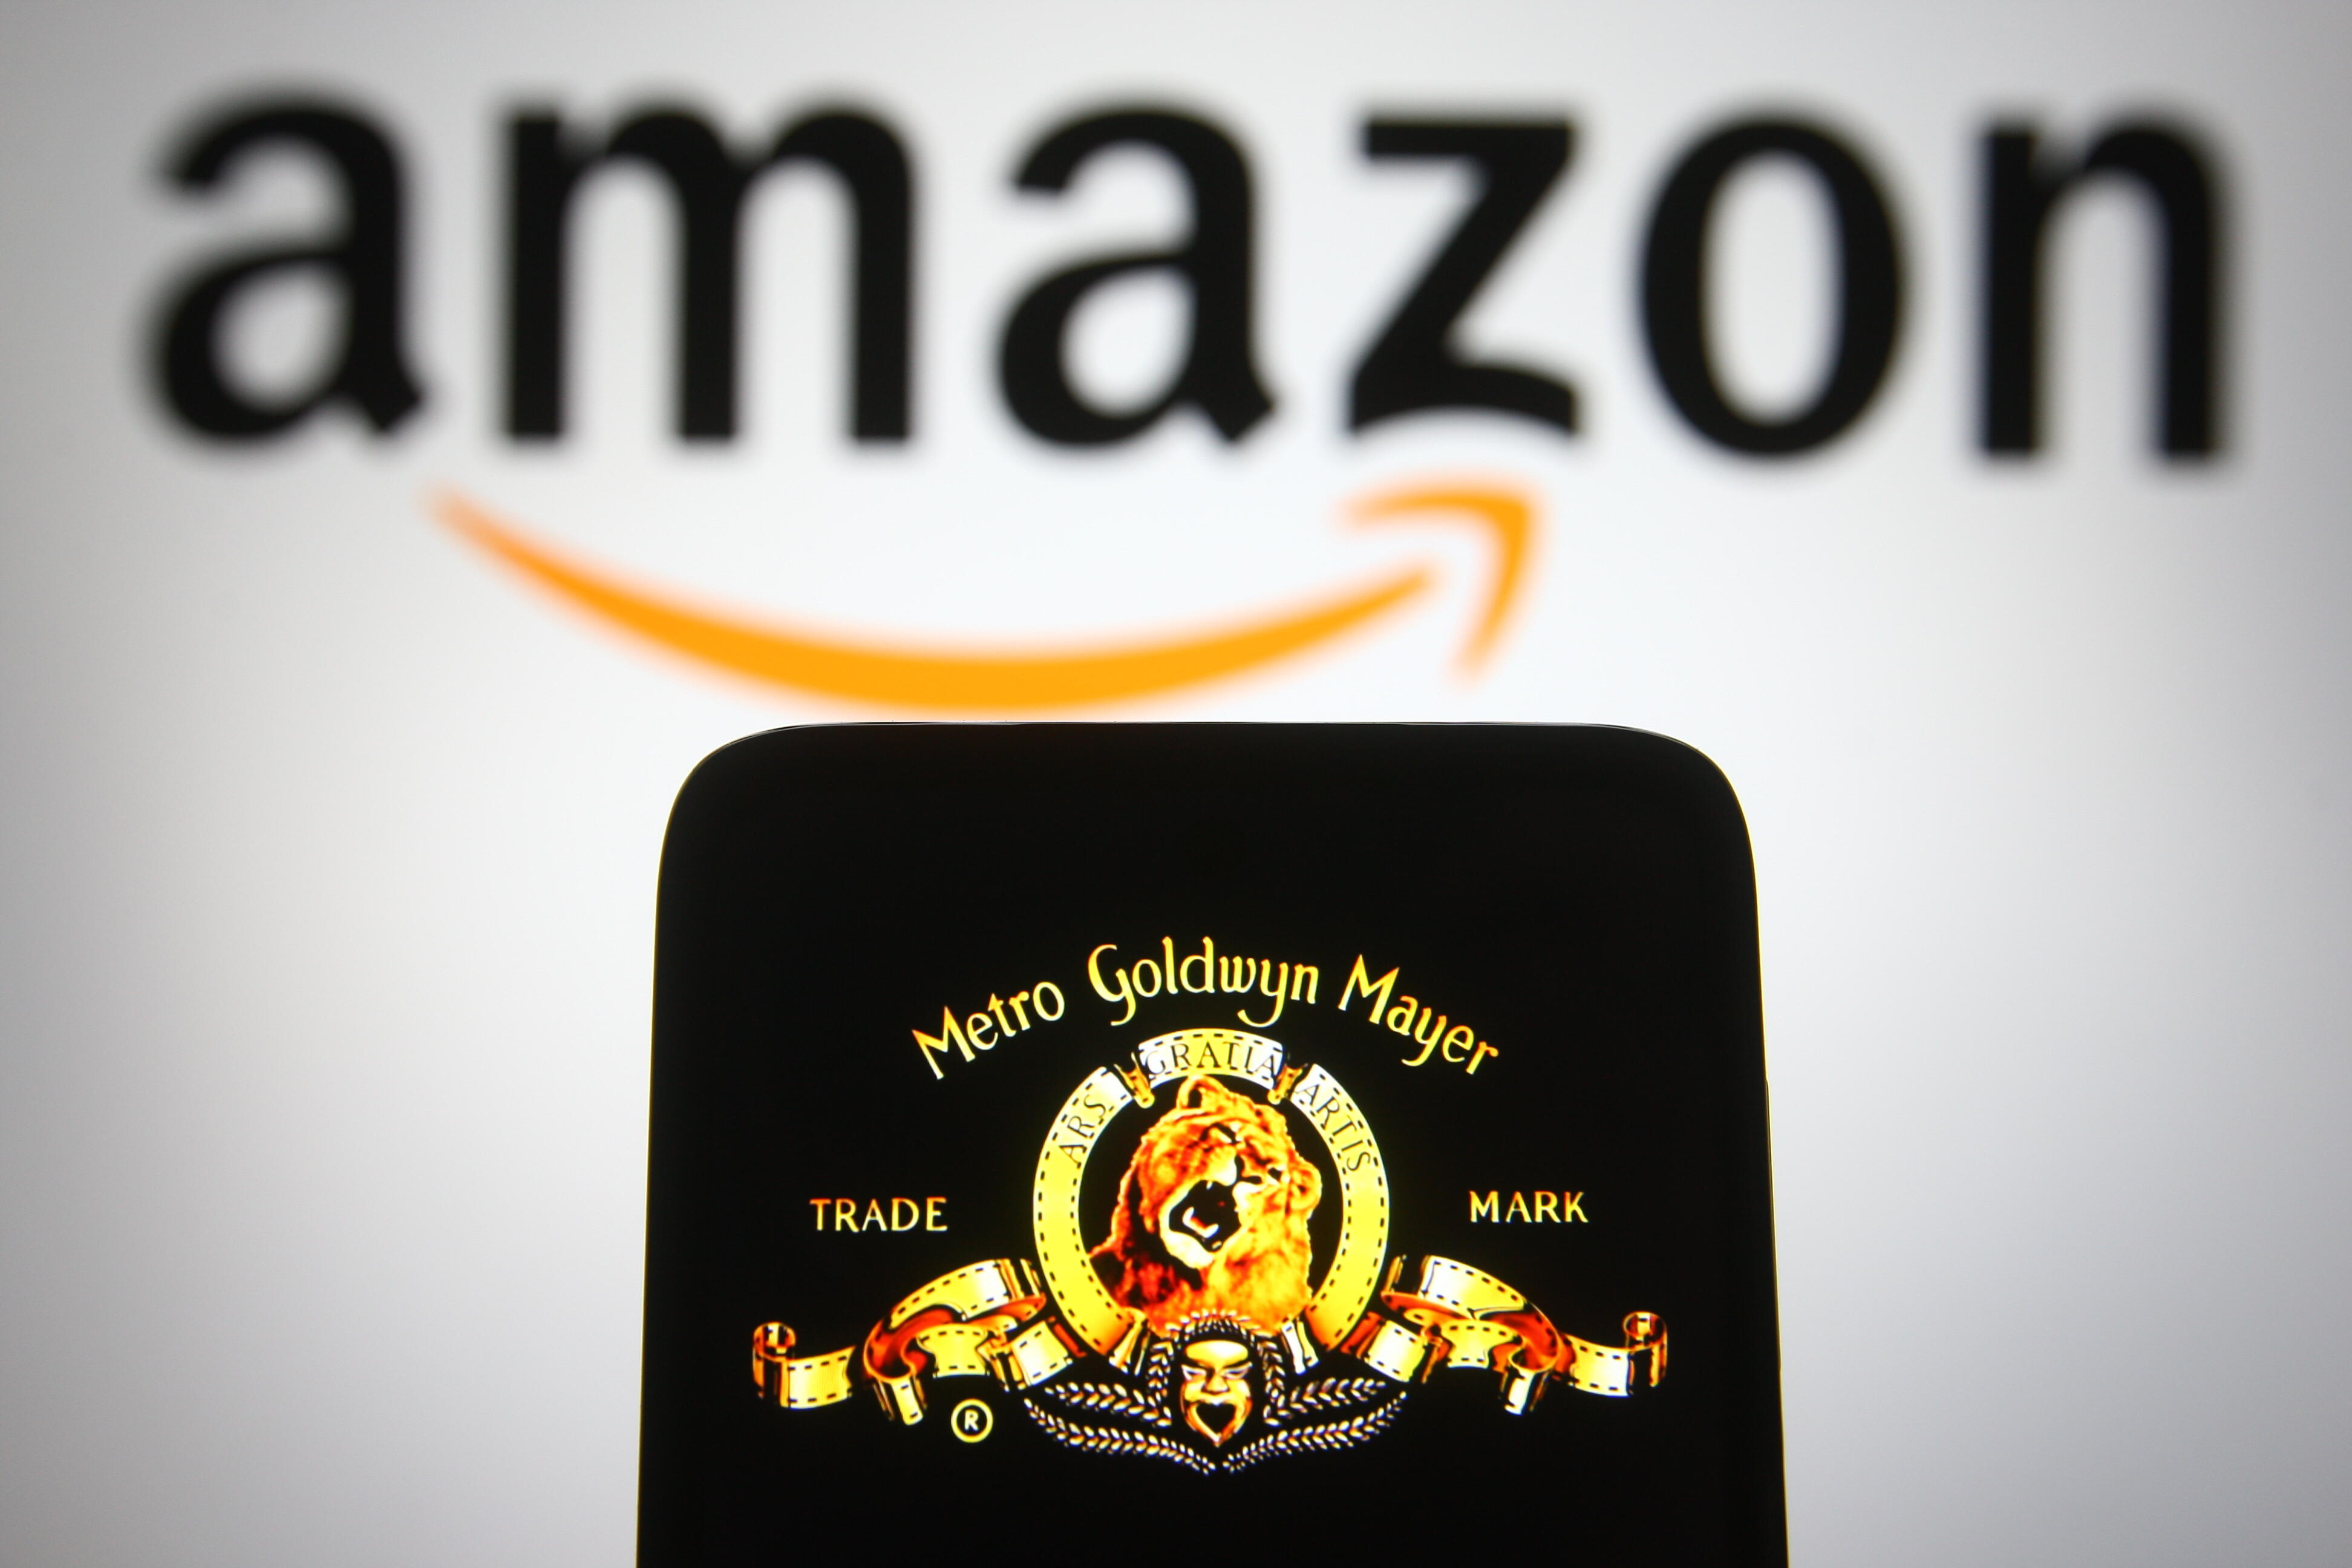 A phone displays the MGM lion logo. Behind the phone is a larger, blurred out Amazon sign.